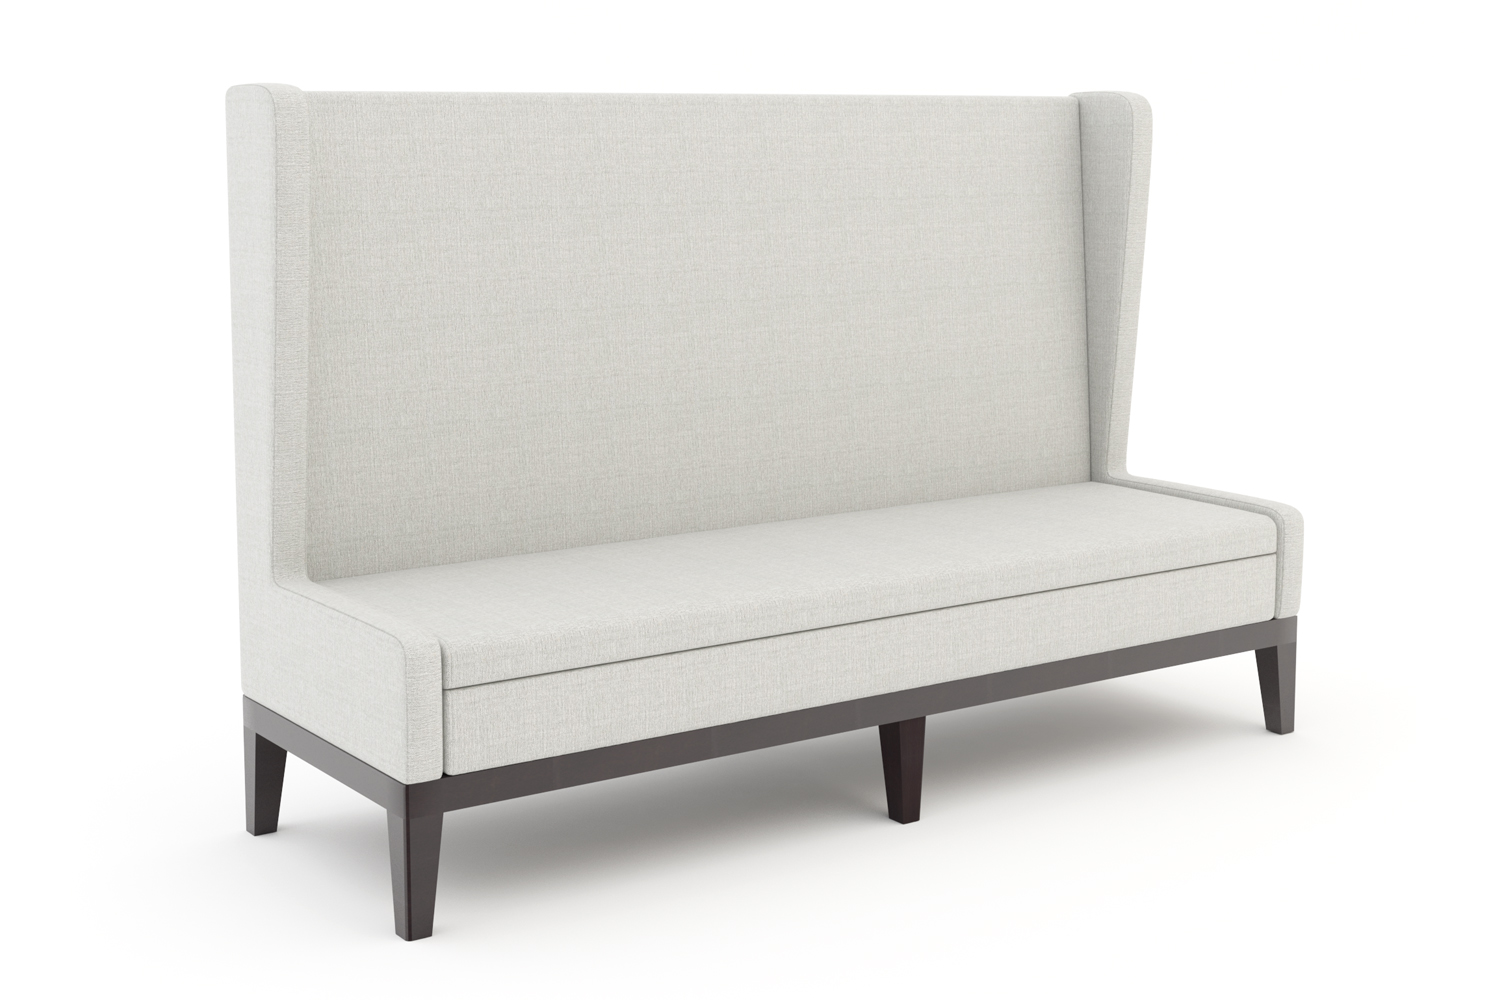 Symphony, Banquette, 3-Seat, High Back